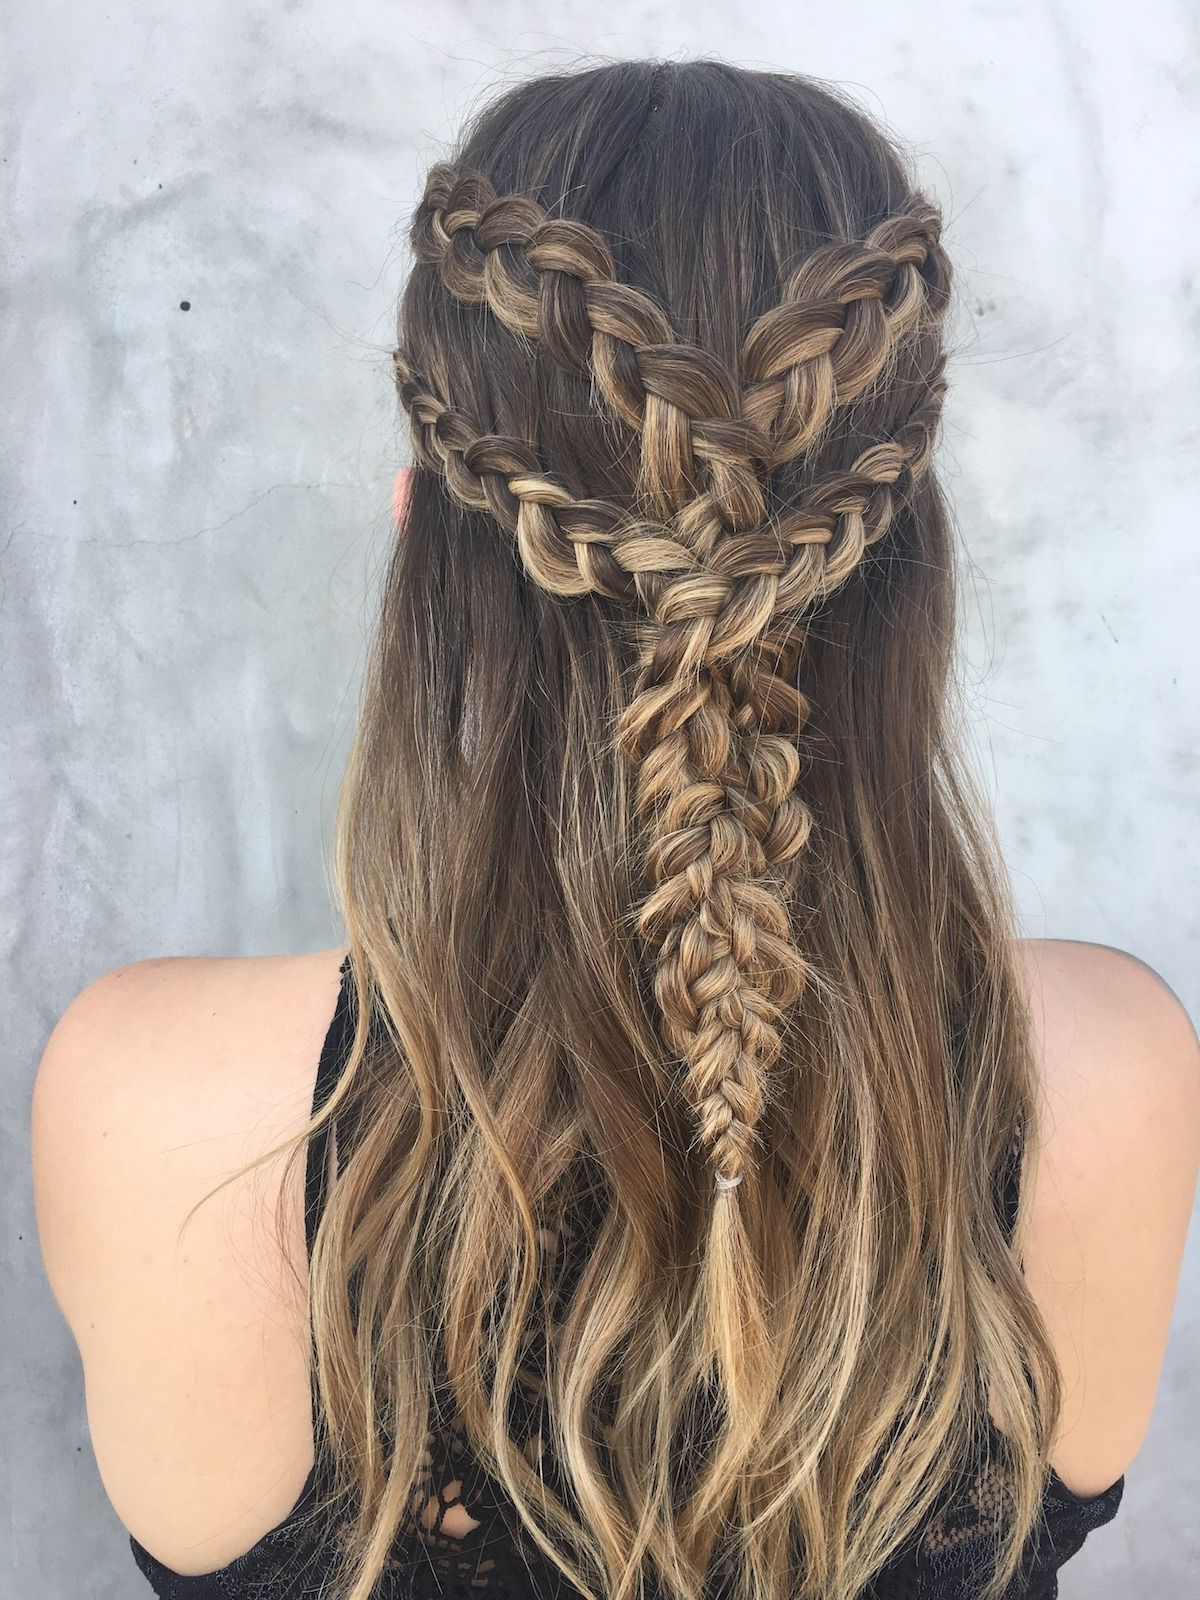 Channel Your Inner Khaleesi With This Game Of Thrones Intended For Favorite High Waterfall Braid Hairstyles (View 4 of 20)